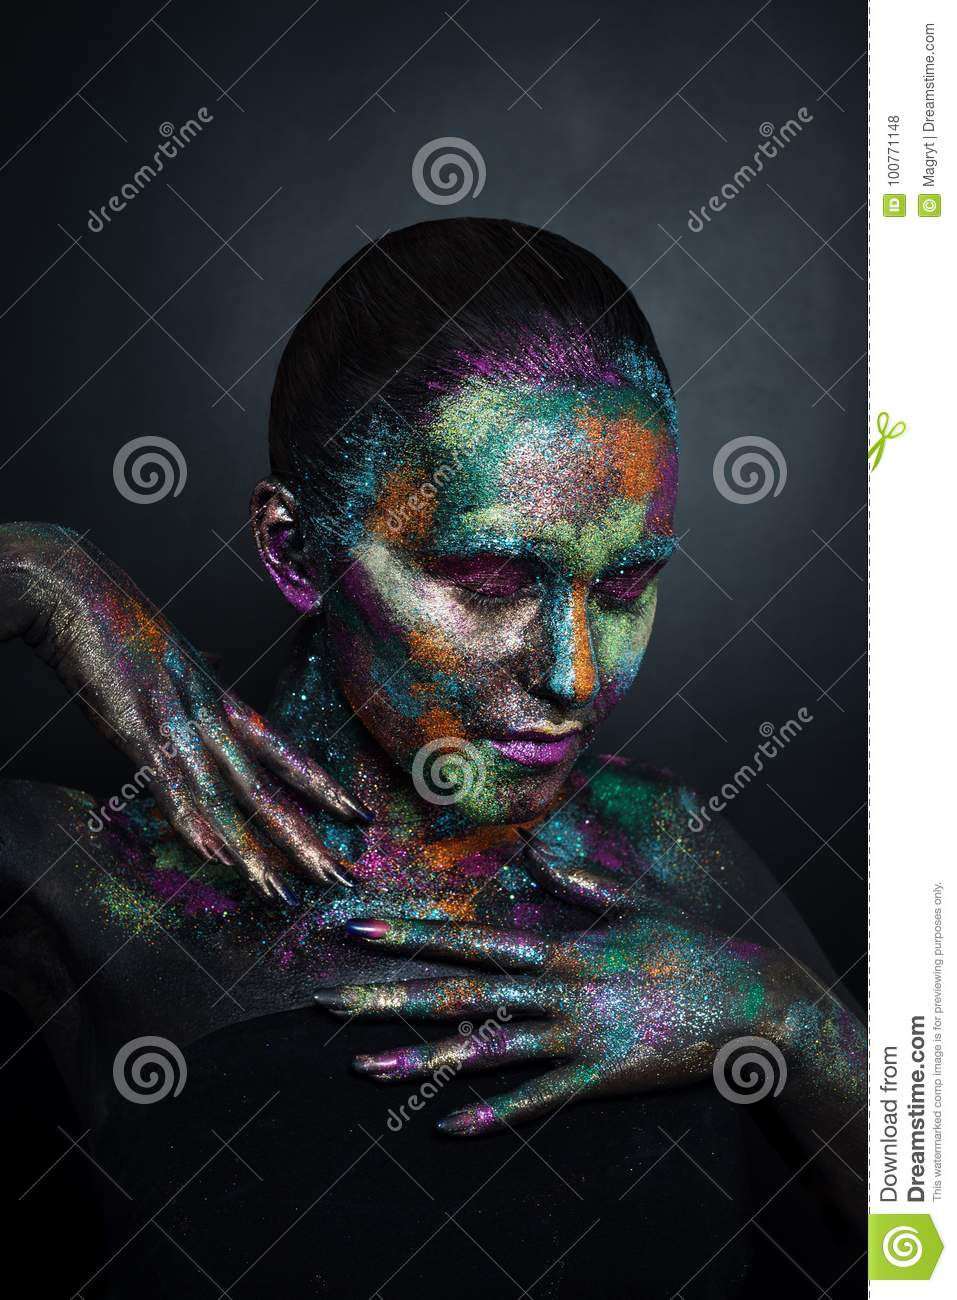 Young Artistic Woman In Black Paint And Colourful Powder Glowing Dark Makeup Creative Body Art On The Theme Of Space Stock Photo Image Of Dance Lady 100771148